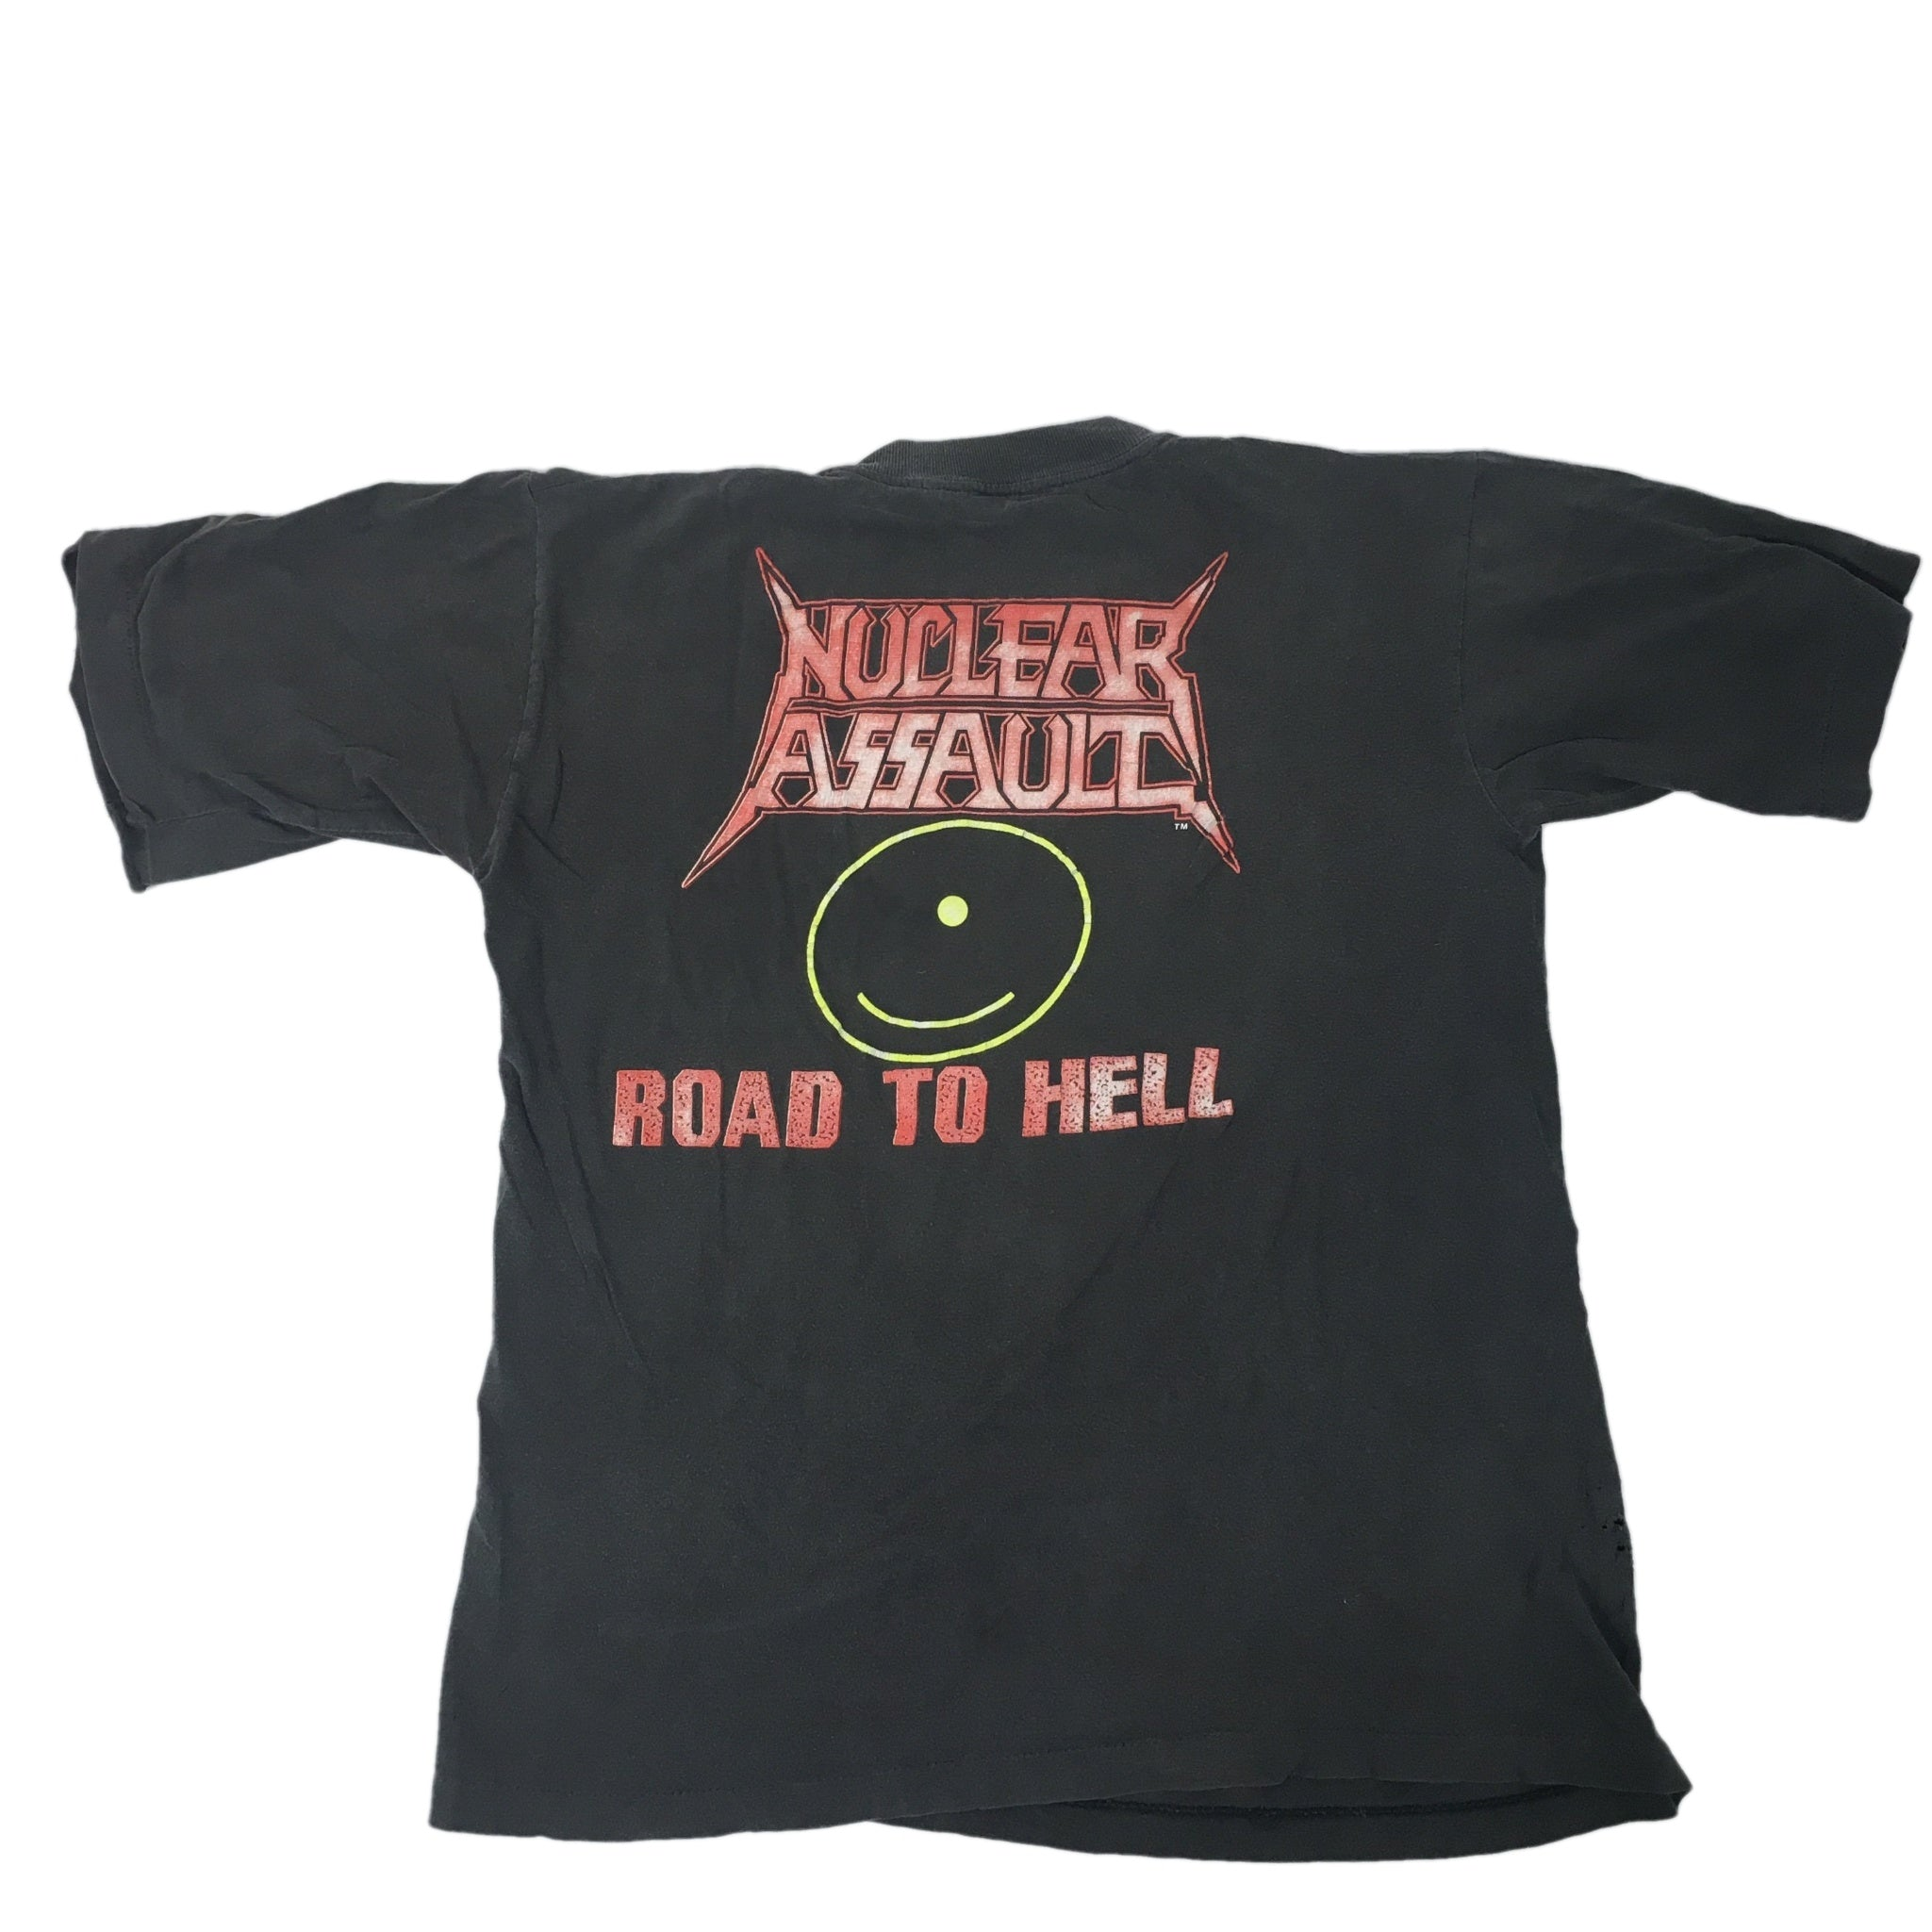 "Vintage Nuclear Assault ""Road To Hell"" T-shirt 1989"